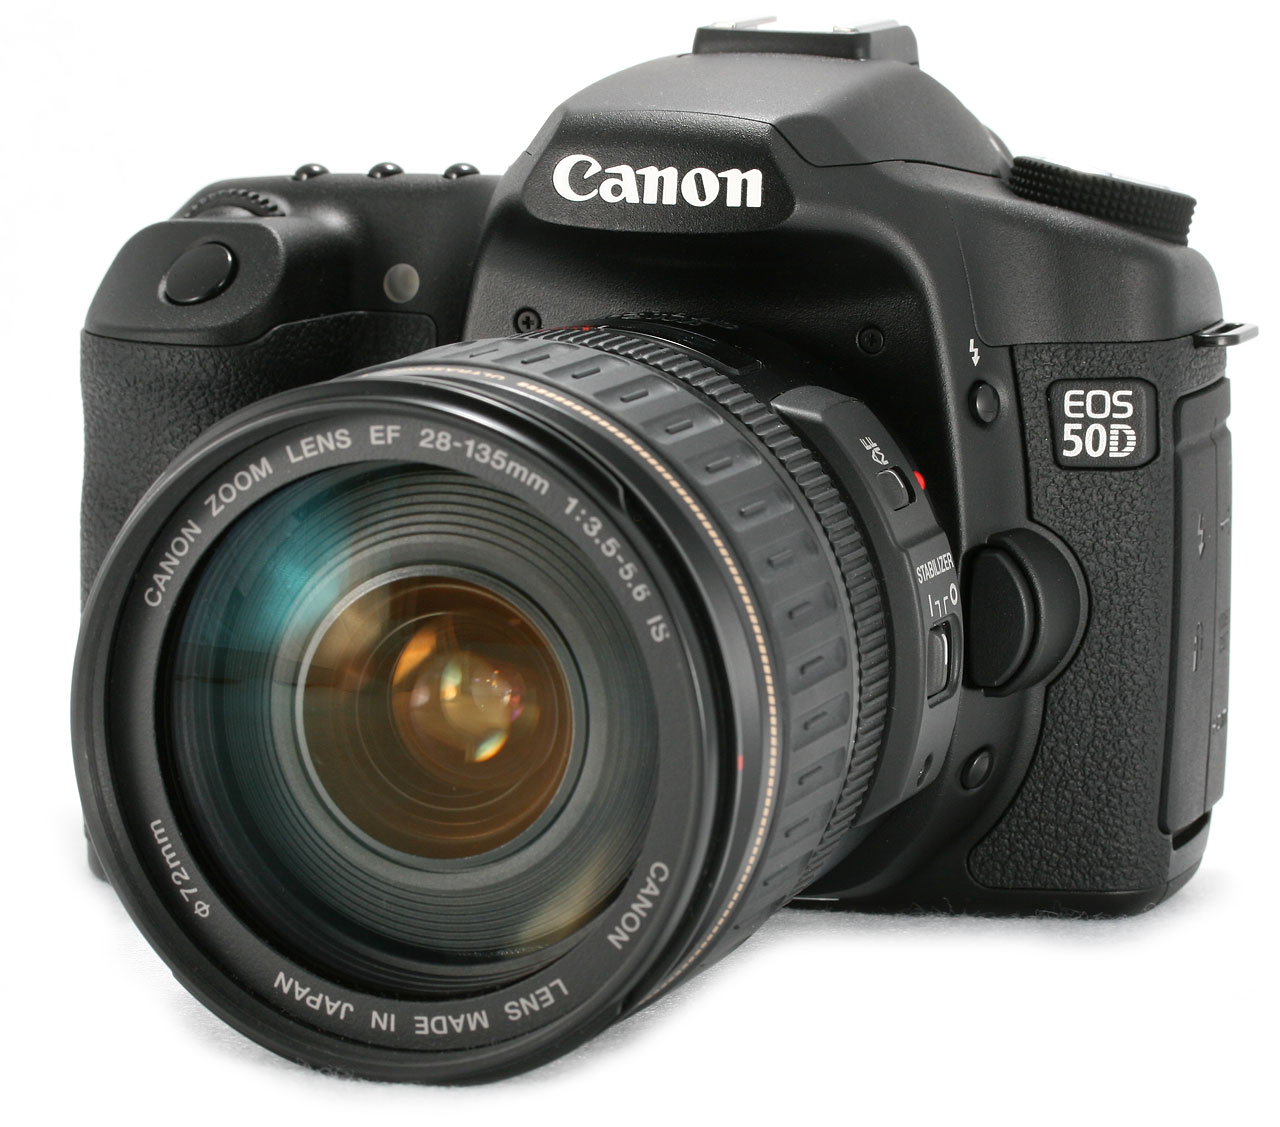 Canon 50D Review: Full Review Canon